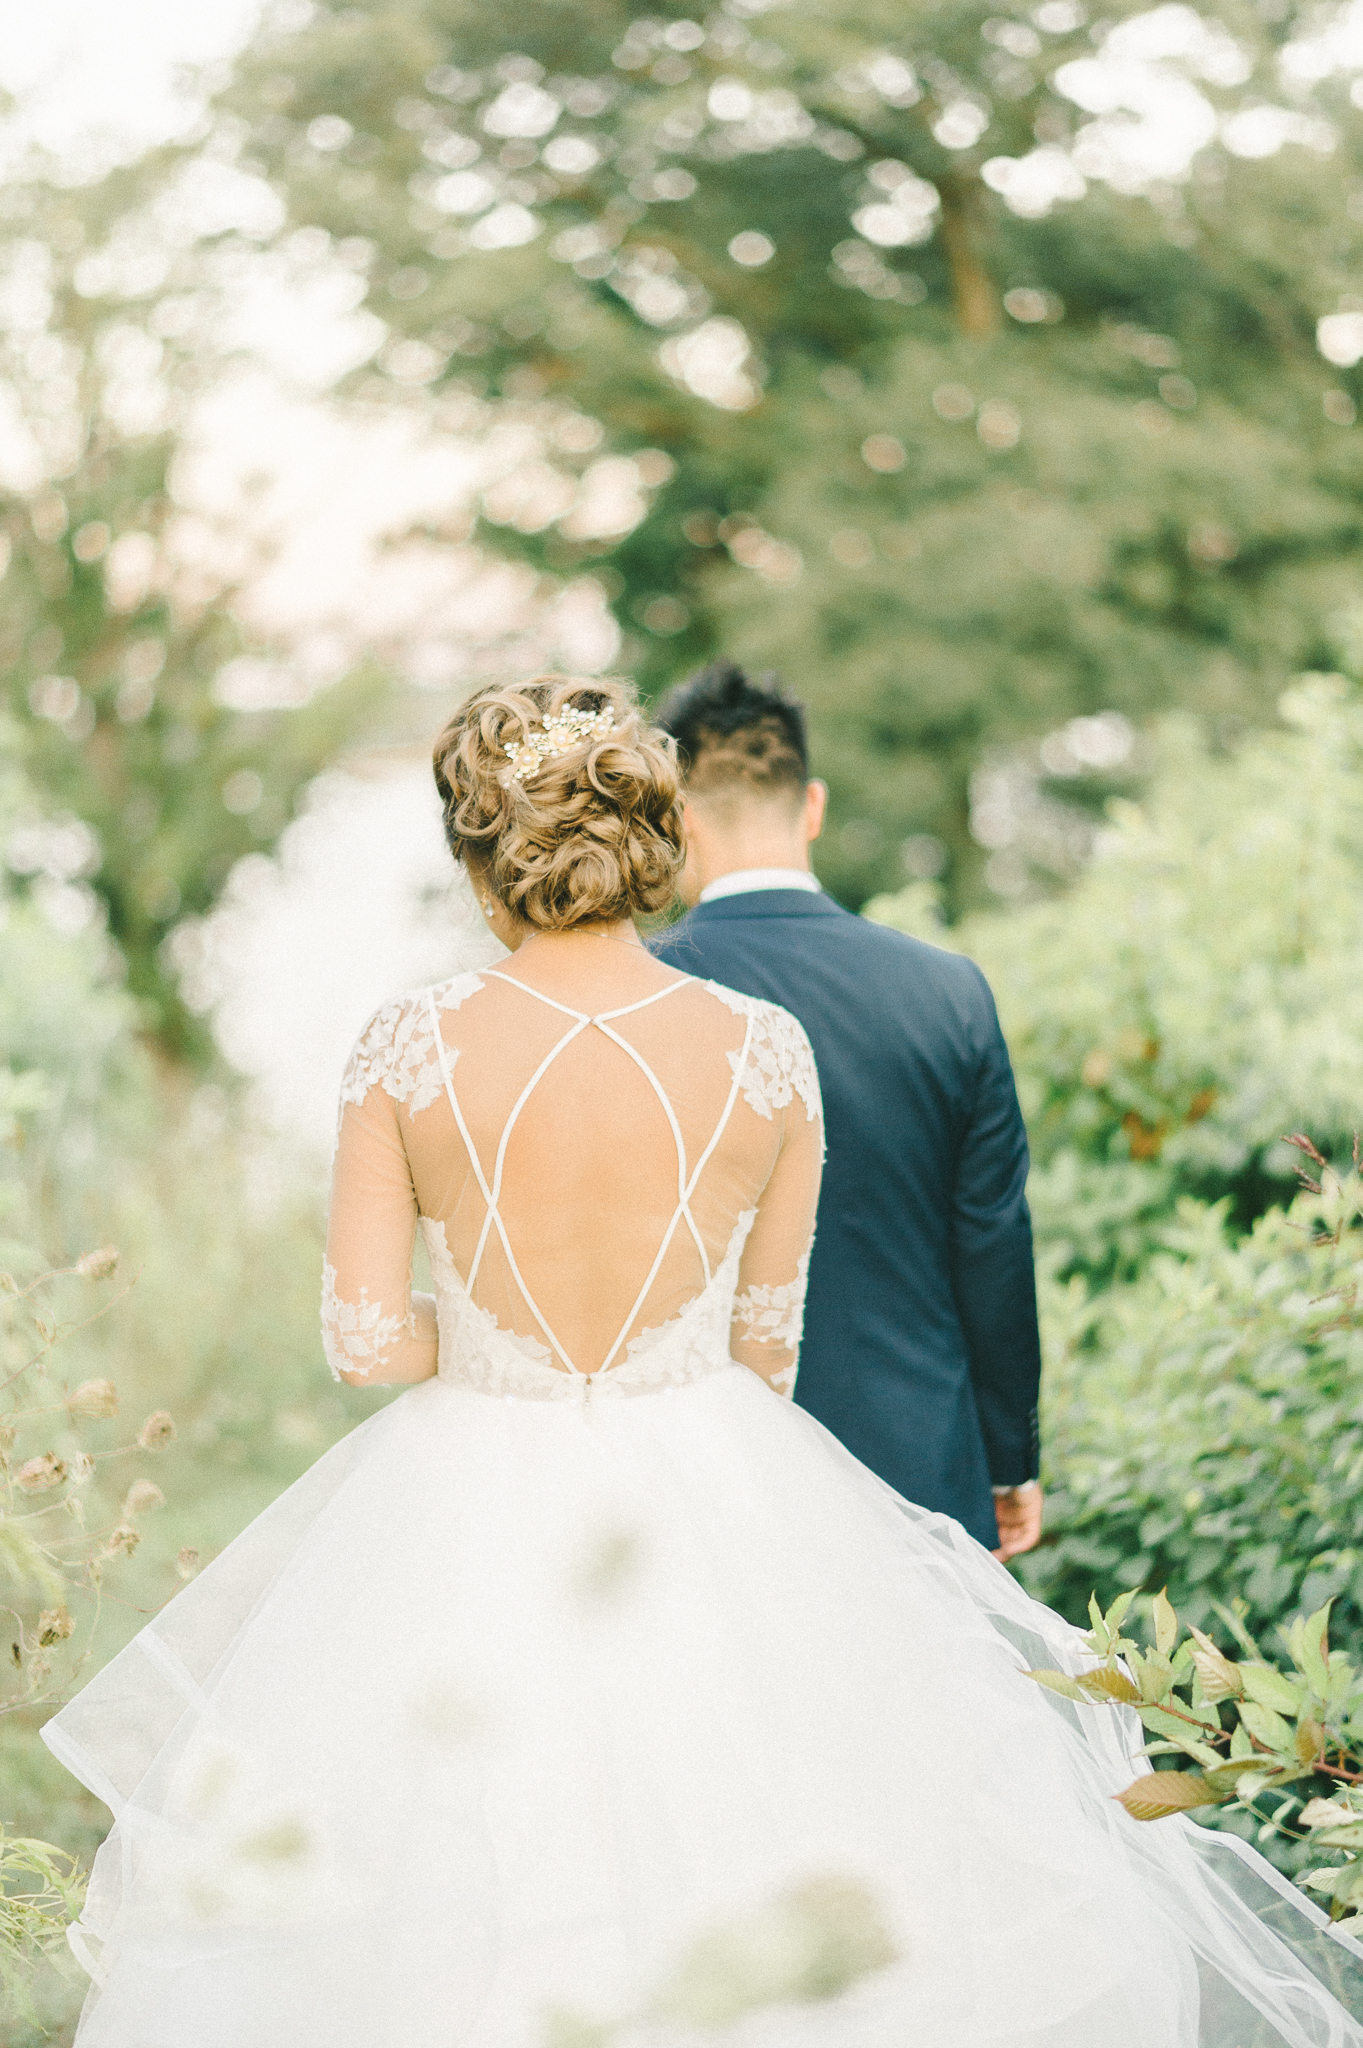 A Bride with an Illusion-Back Wedding Dress Walking with Her Groom